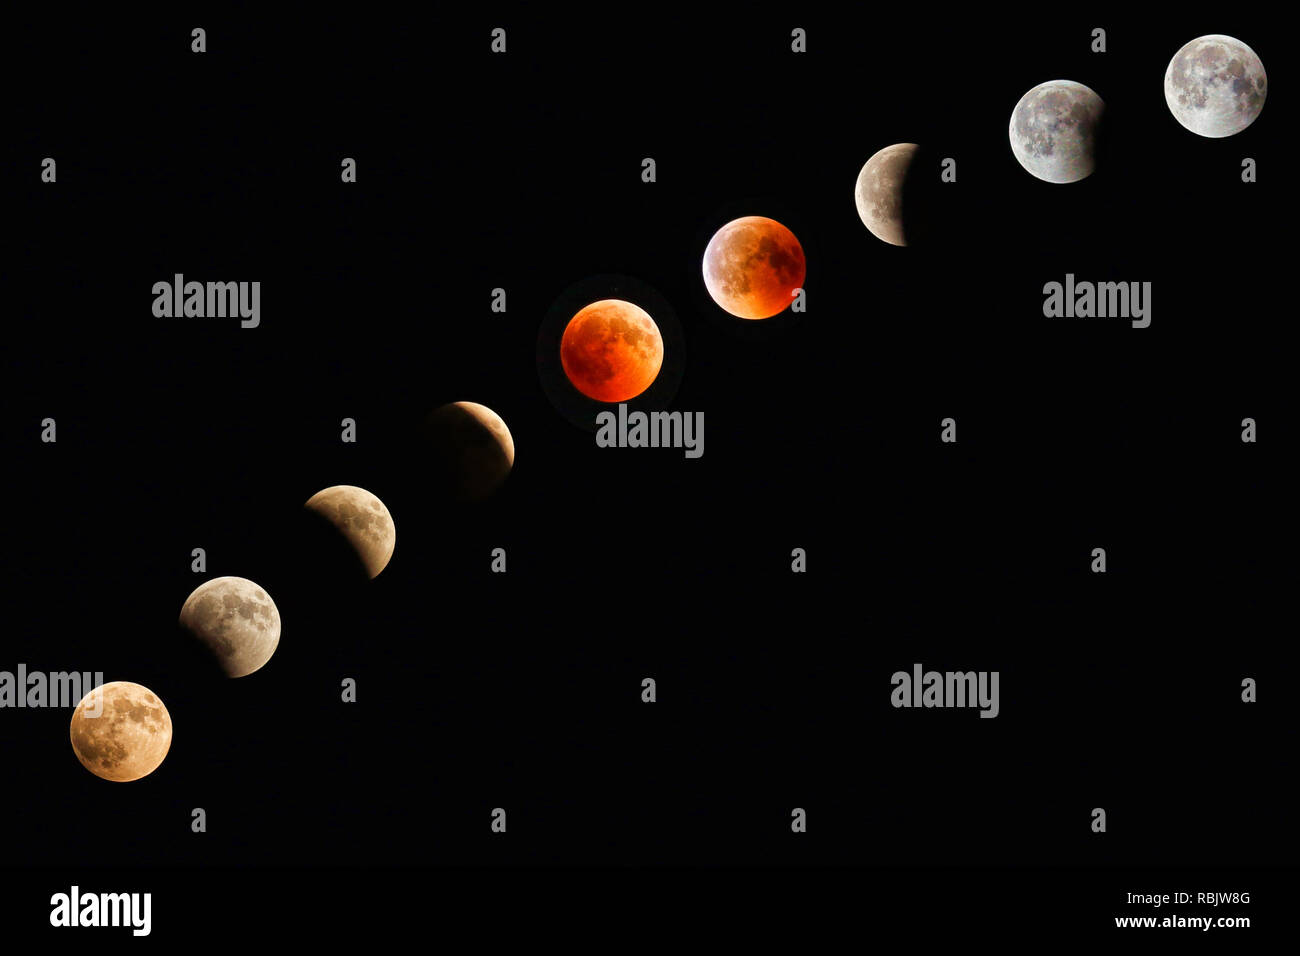 Blood Moon Lunar Eclipse Progression of July 2018 - Stock Image